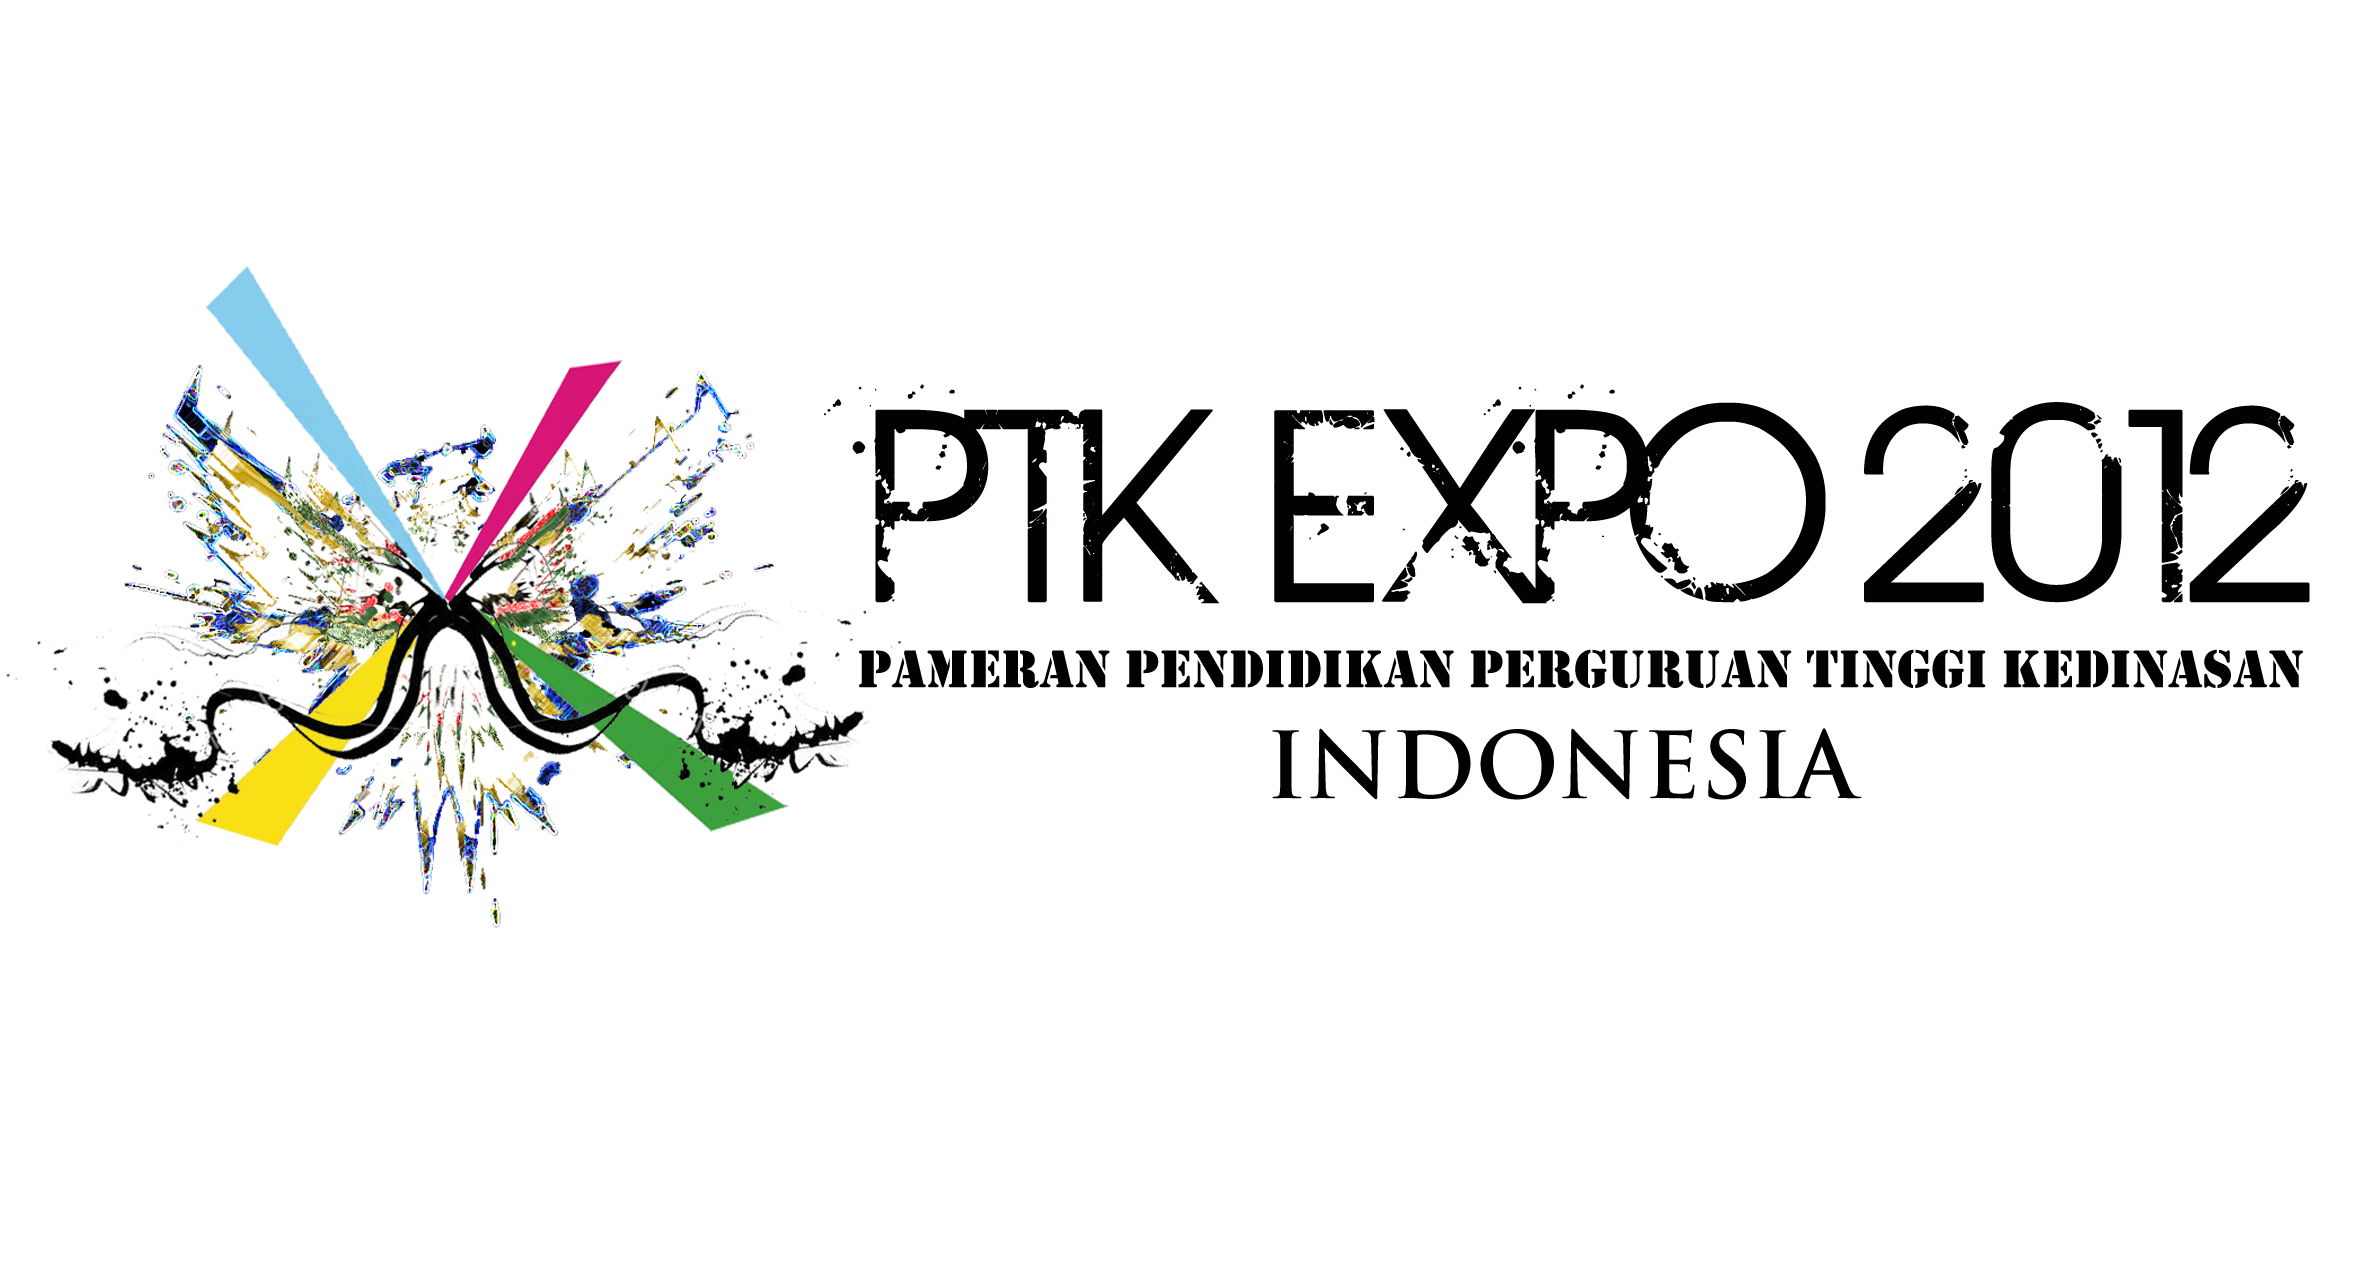 logo ptk expo 2012 pameran perguruan tinggi kedinasan indonesia angin sindoro. Black Bedroom Furniture Sets. Home Design Ideas